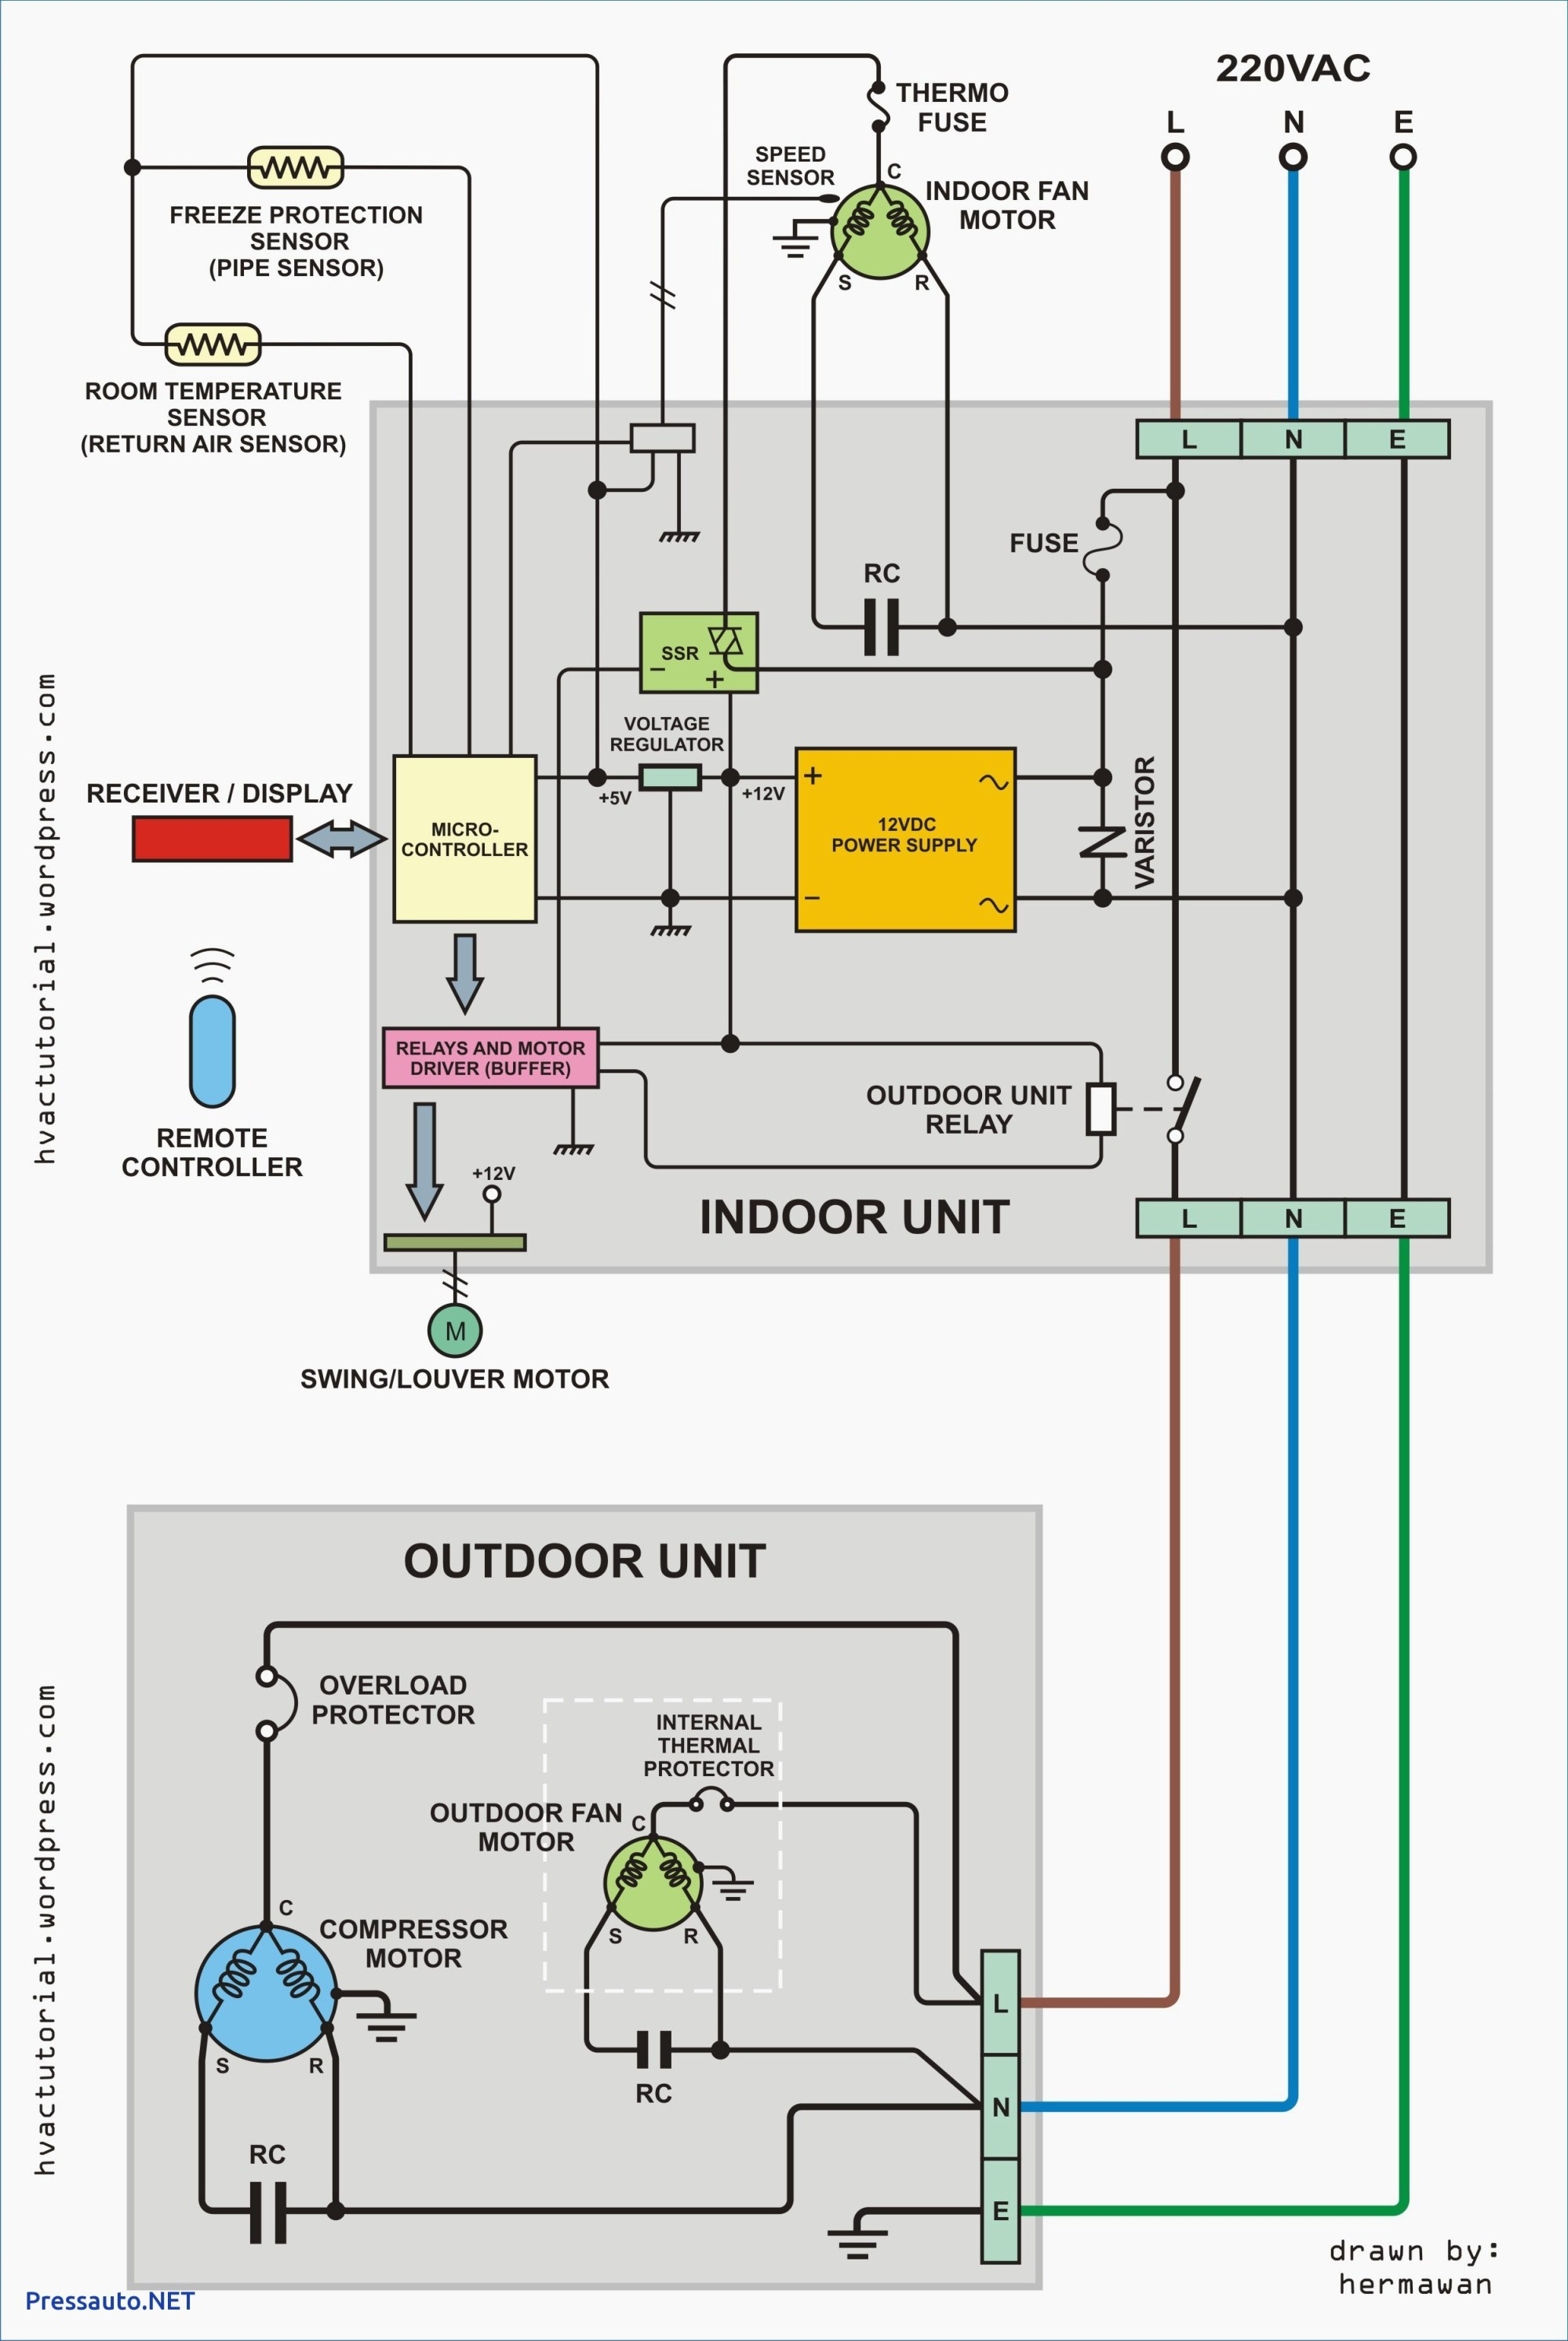 hight resolution of rtu hvac diagram wiring diagram today rtu hvac diagram